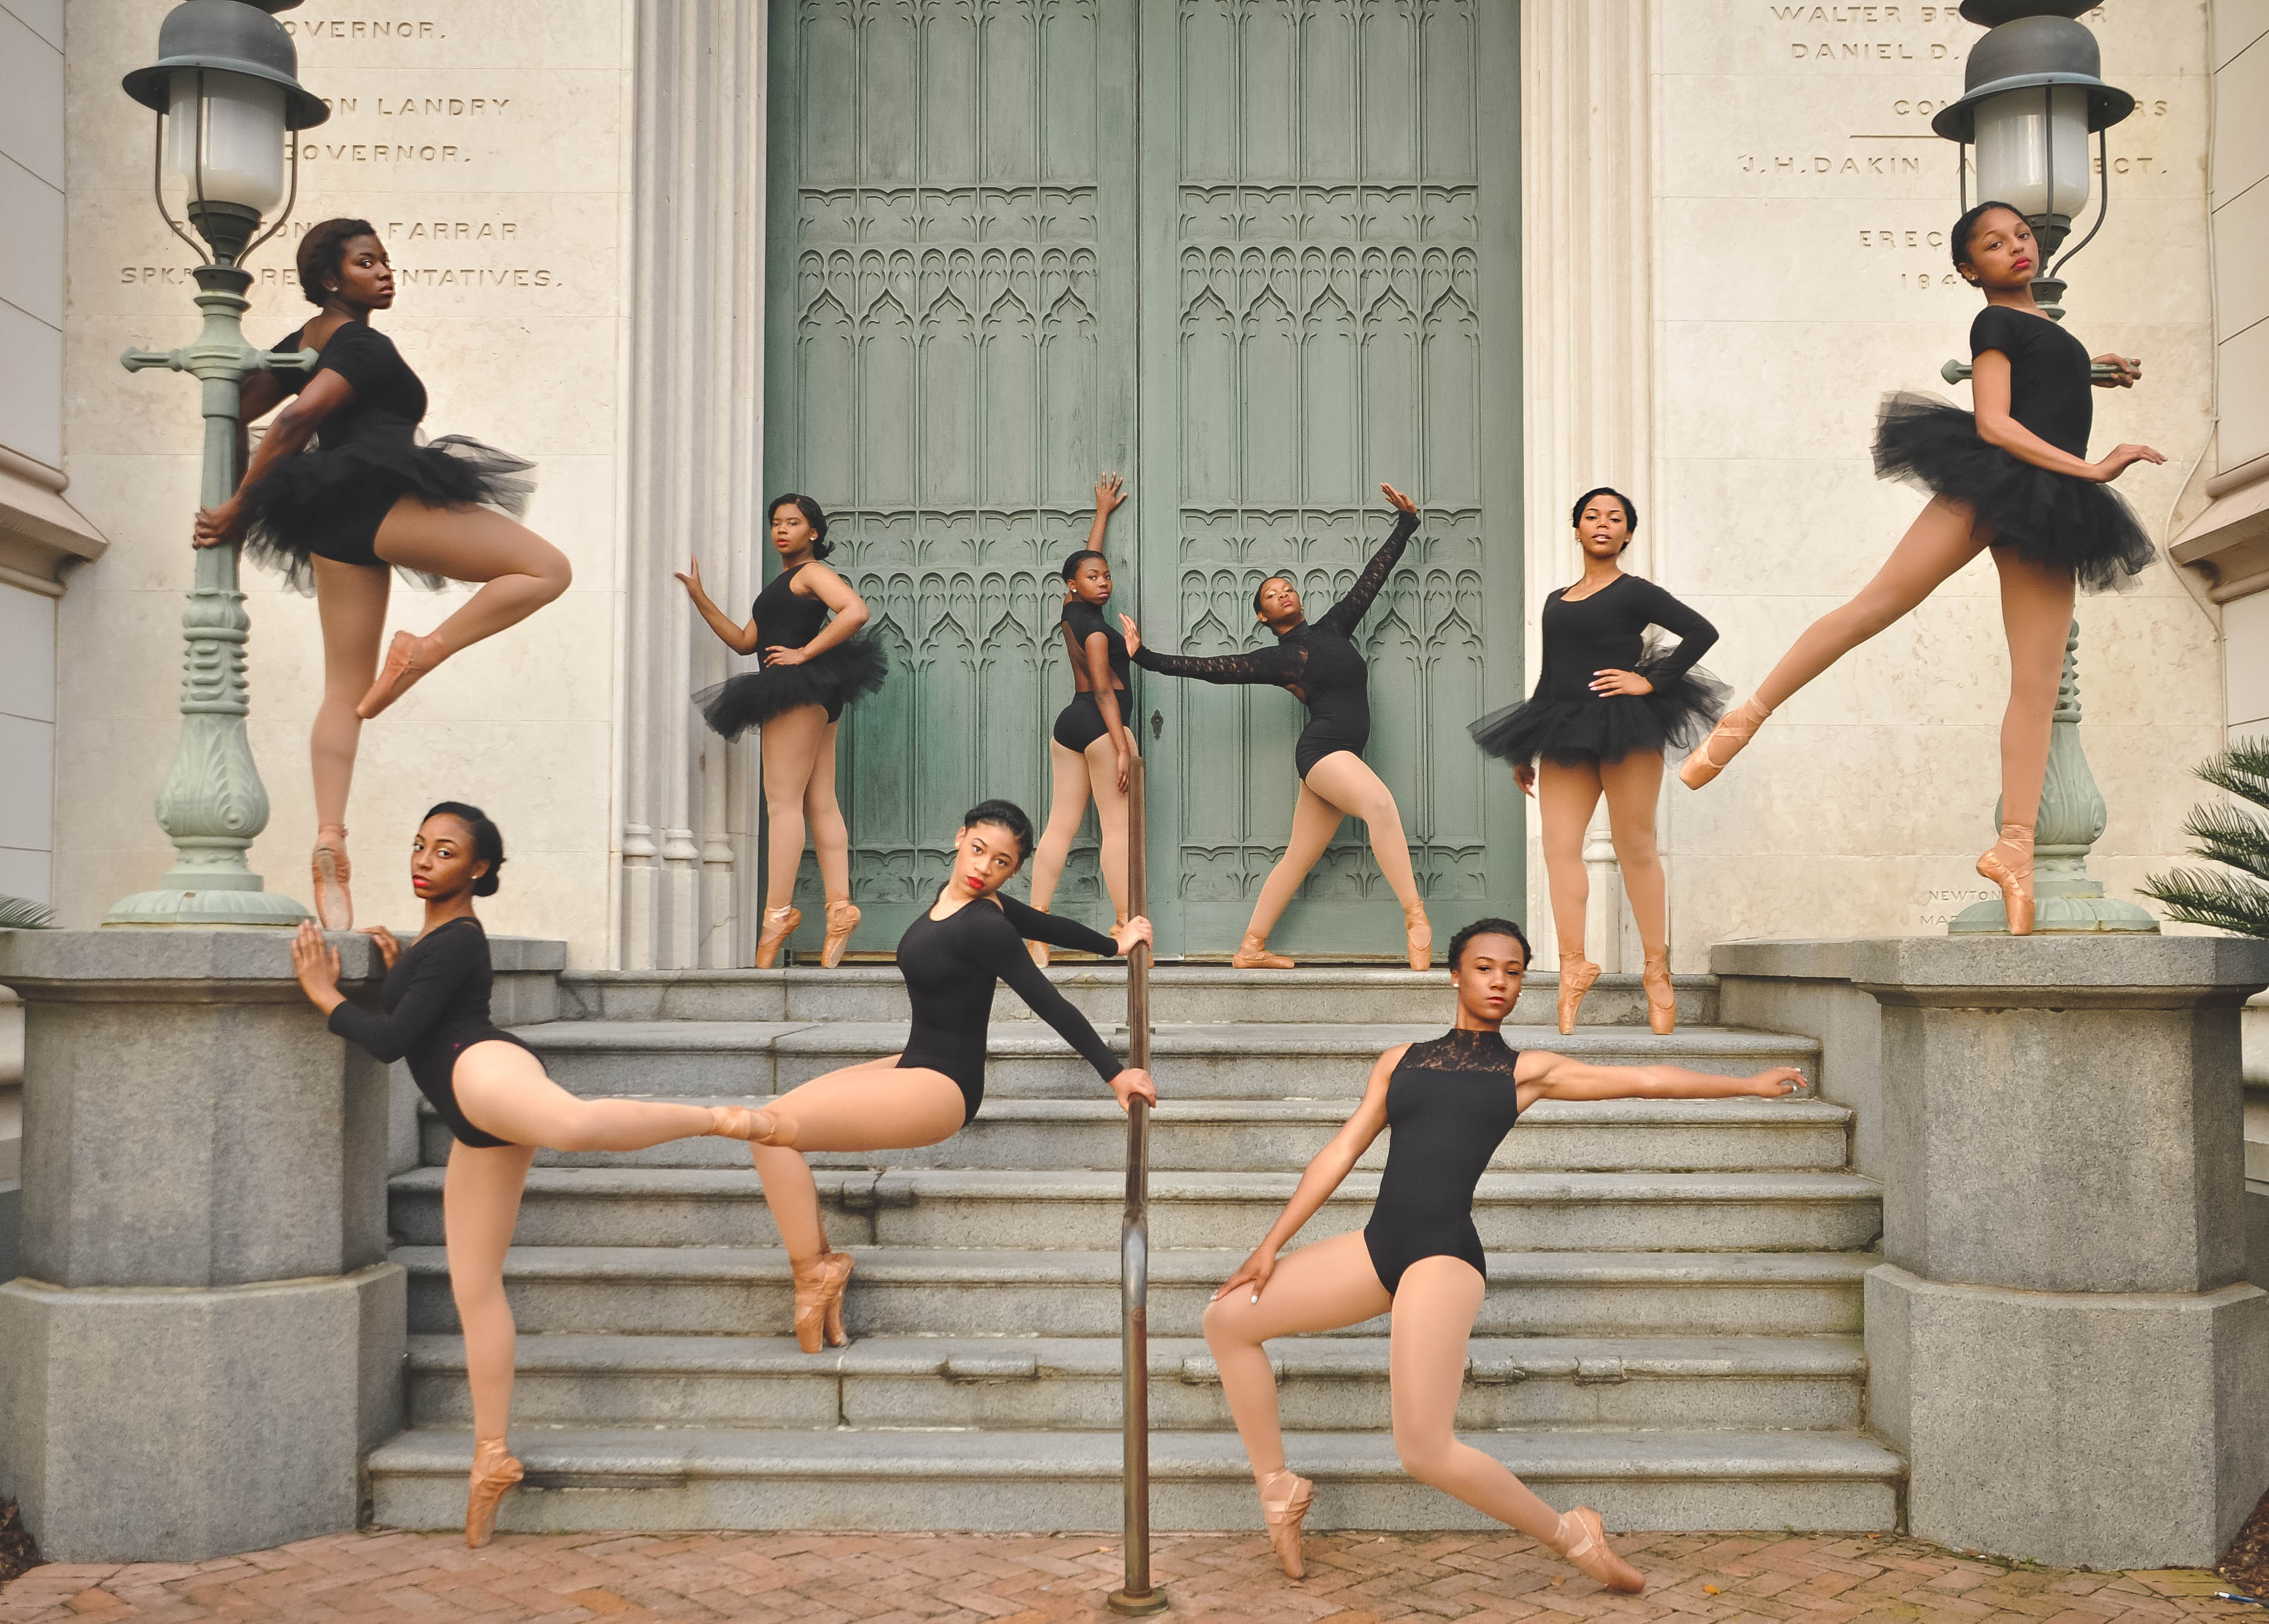 How En Pointe Dance Studio And Their Viral Photo Is Breaking New Ground 225